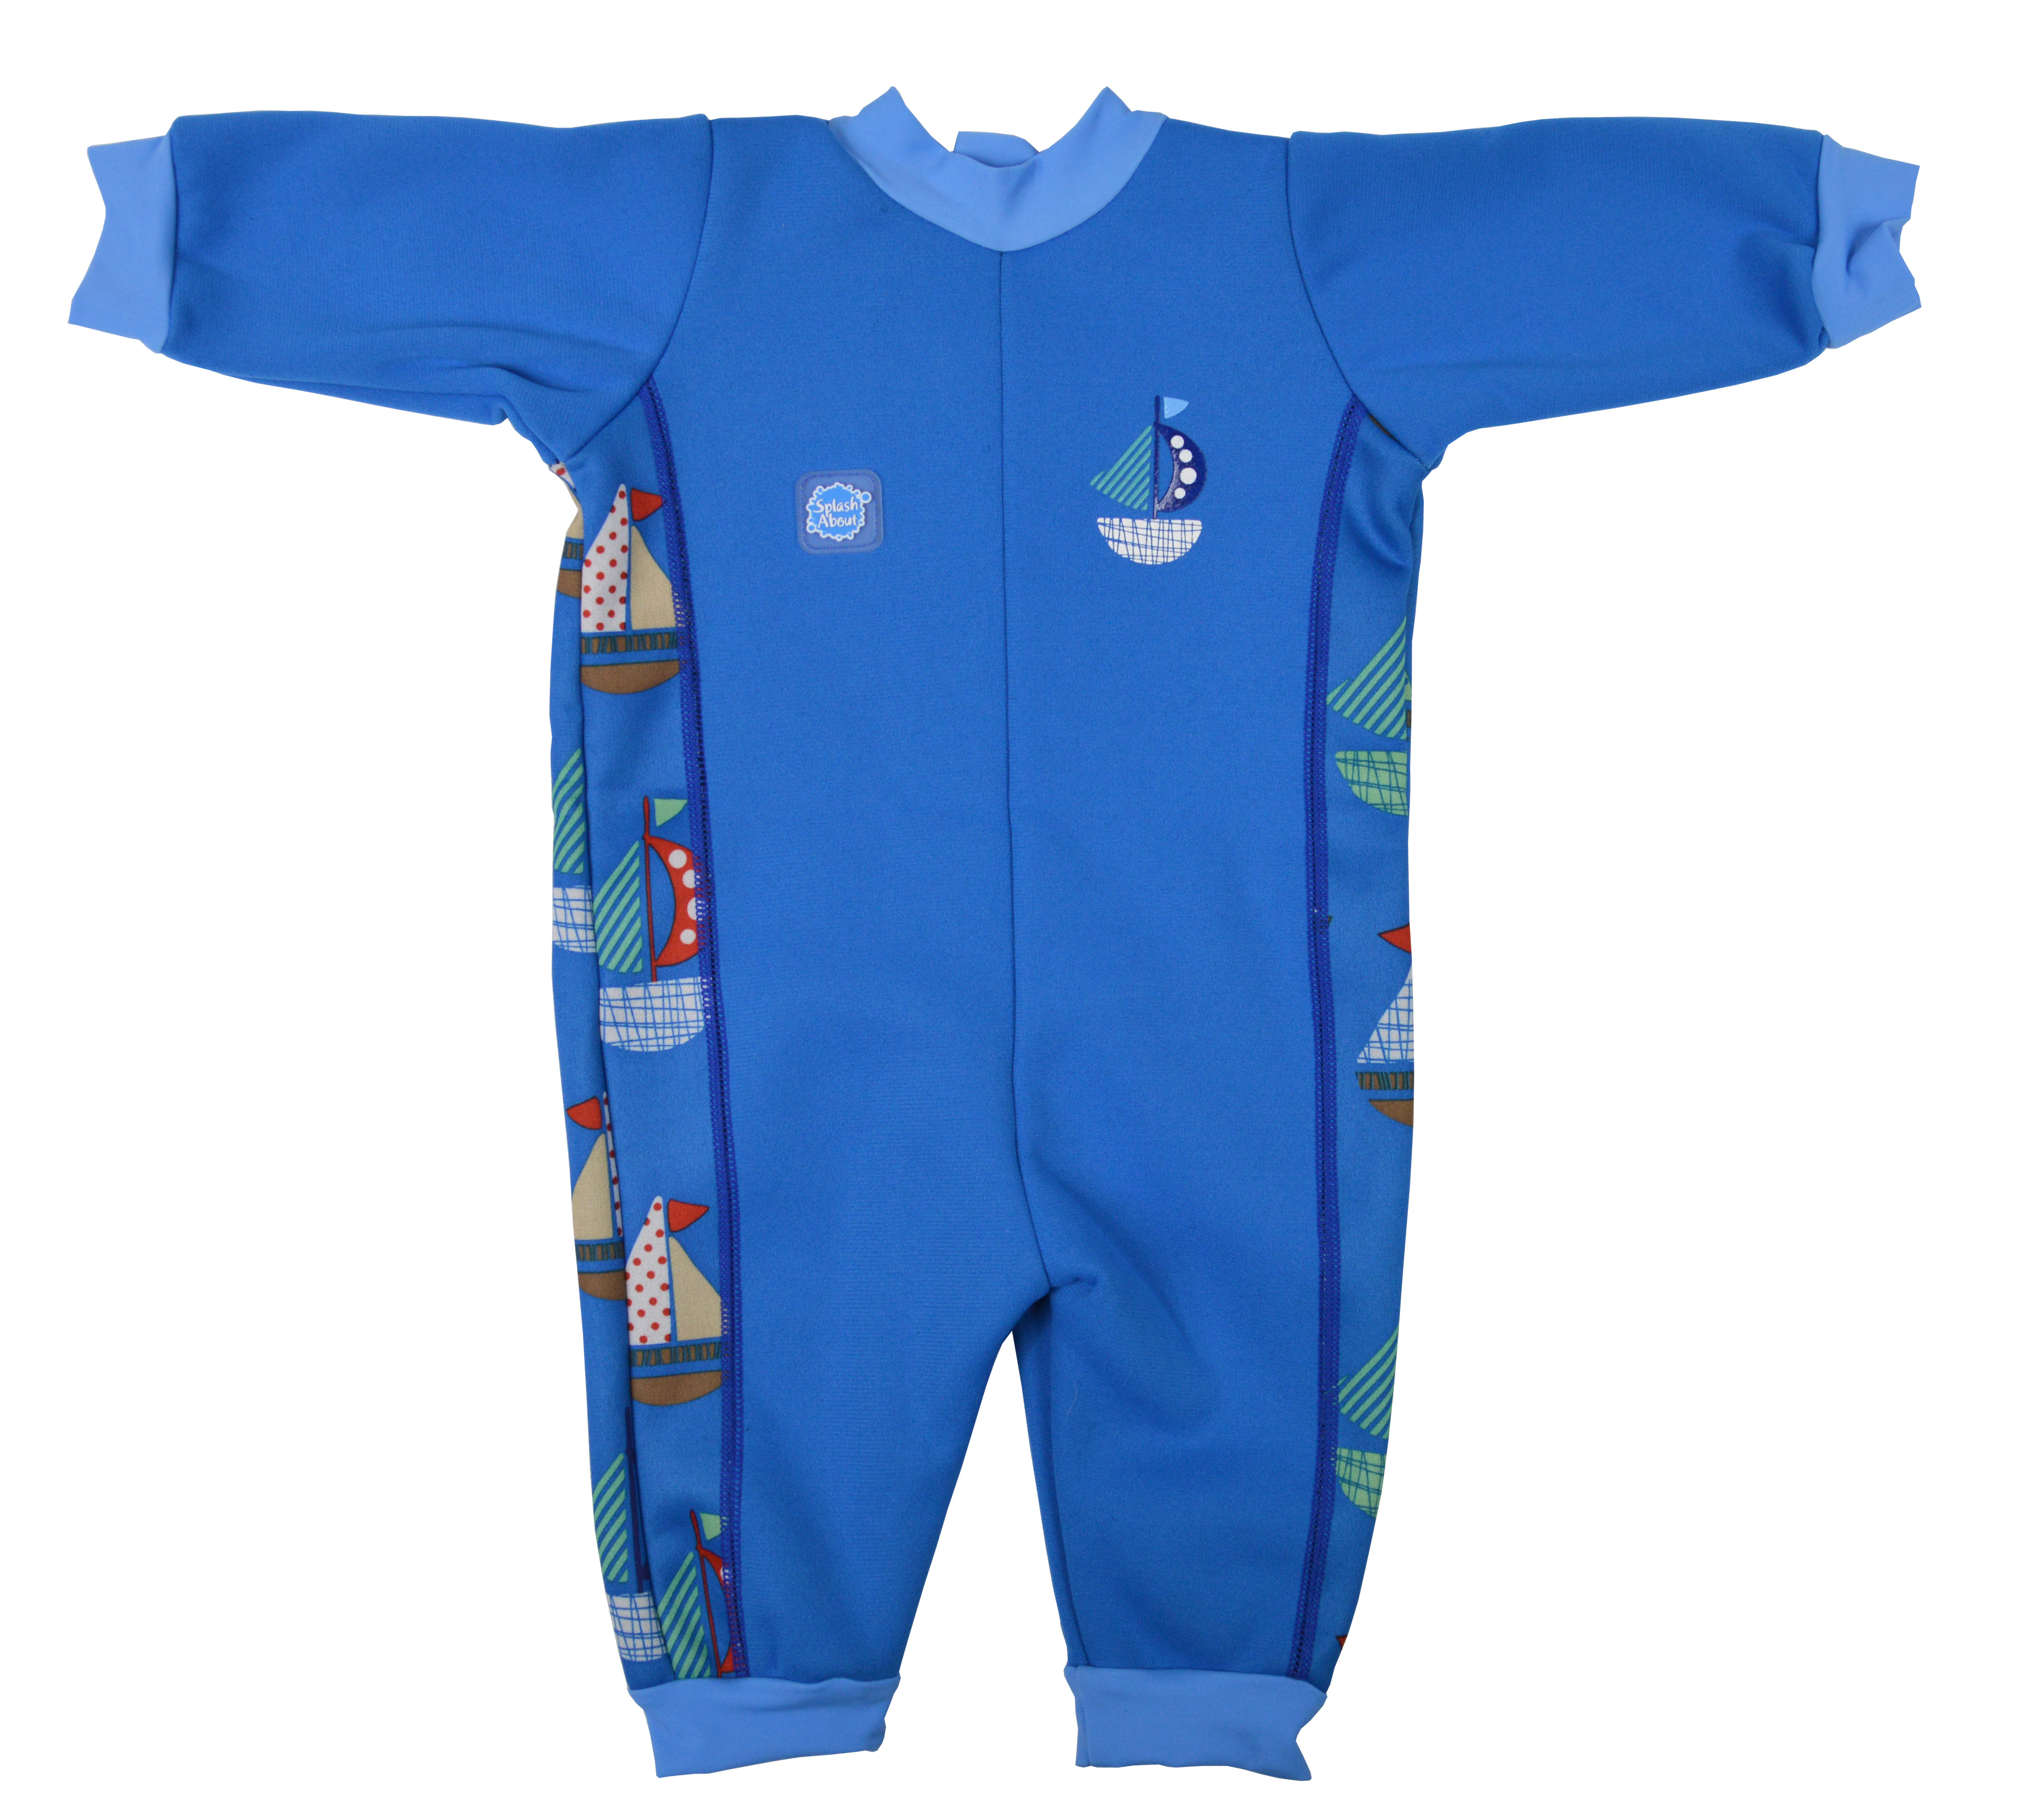 WarmInOne Baby Wetsuit - boat print